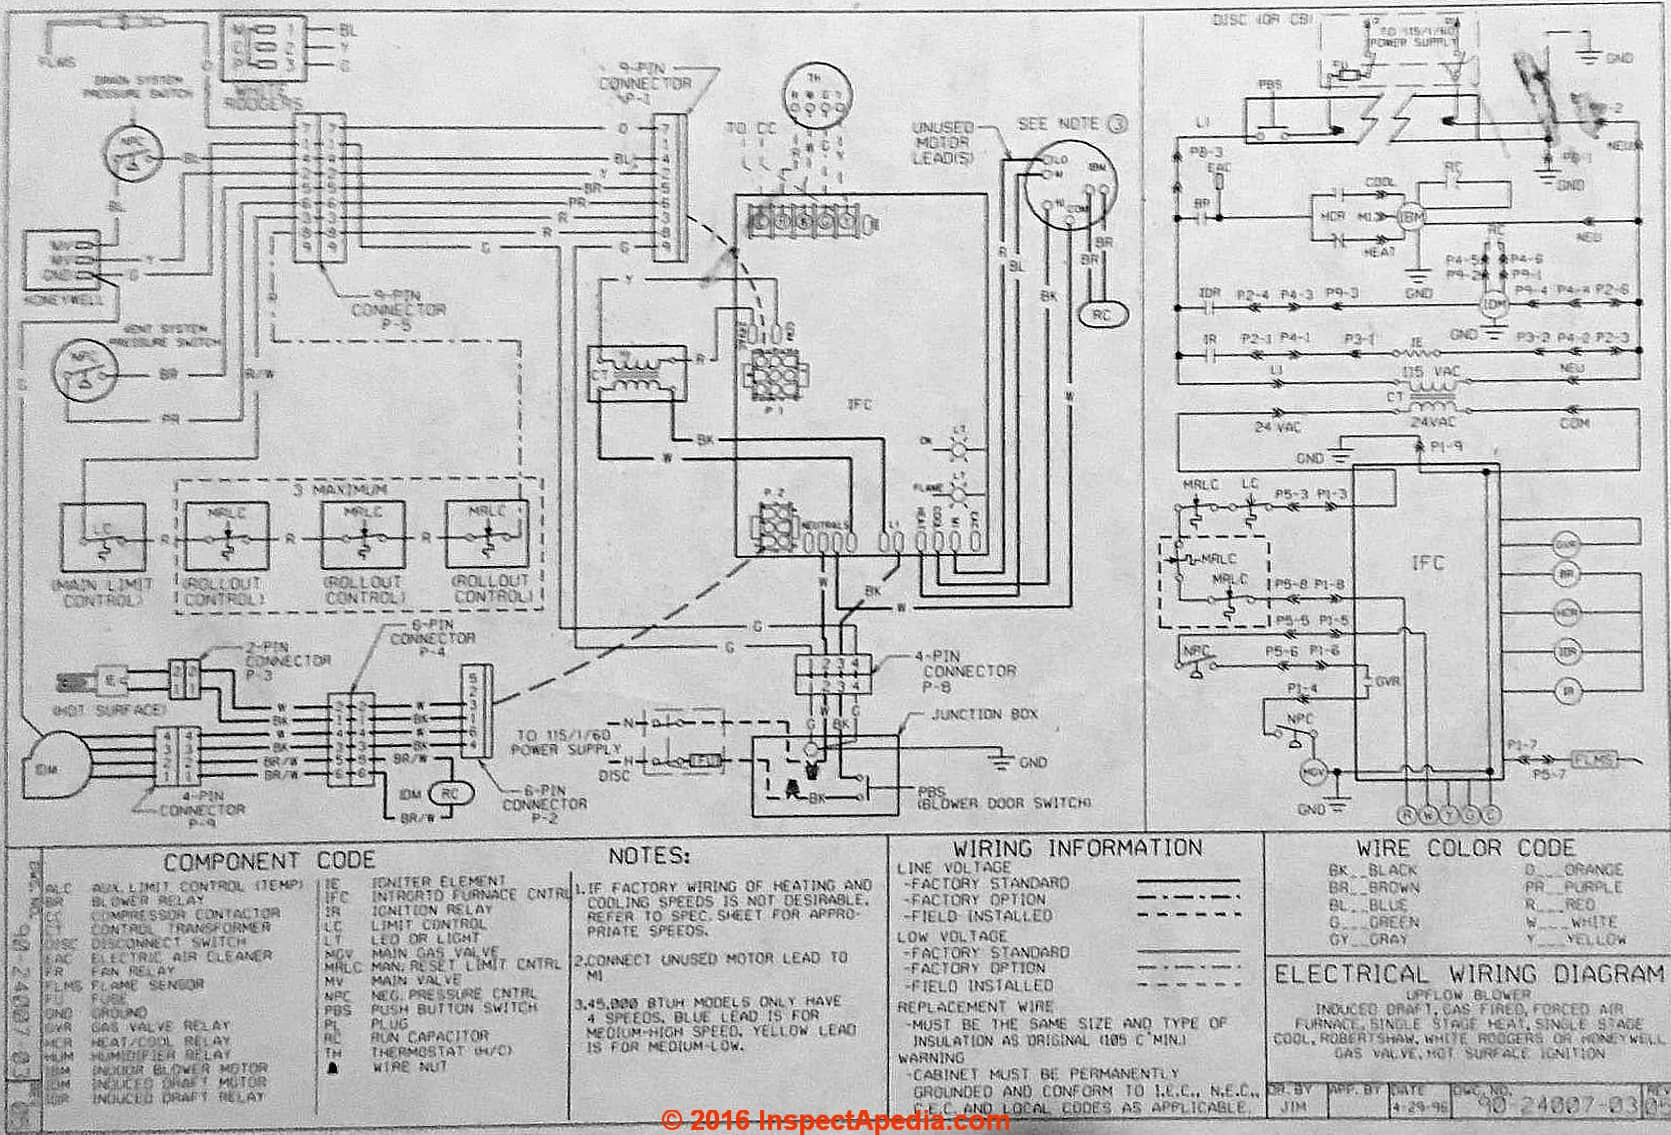 general electric defrost timer wiring diagram free picture air conditioner heat pump faqs #10